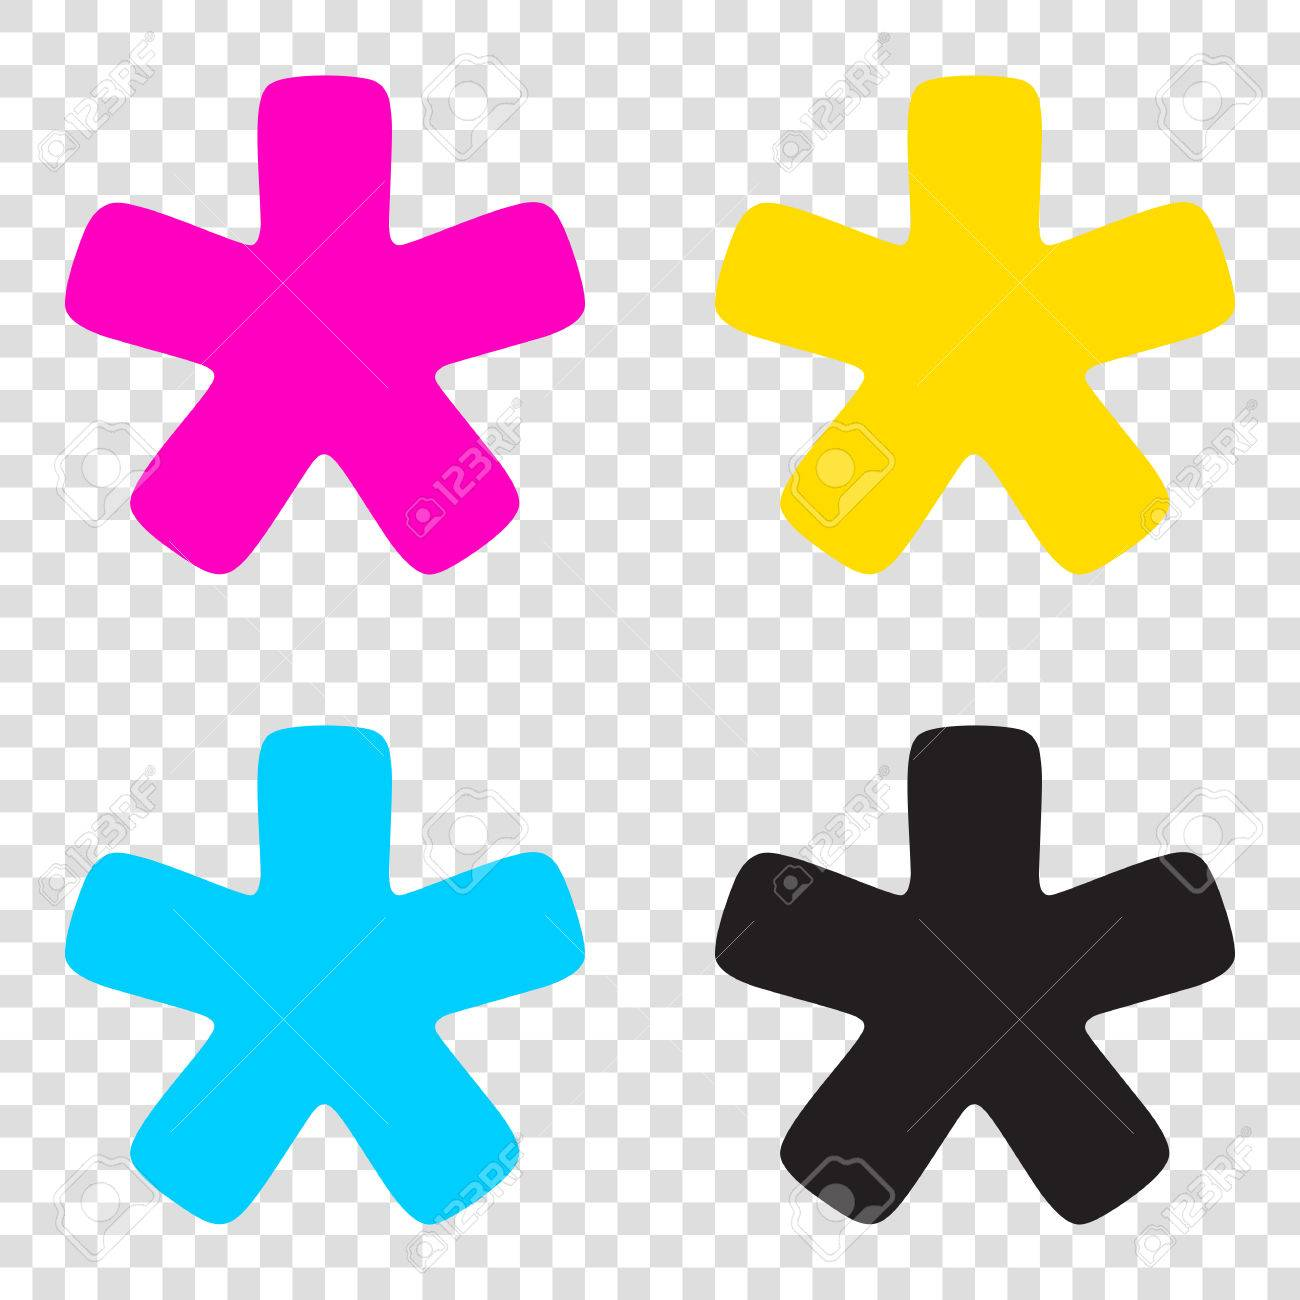 be603c453694 Asterisk Star Sign. CMYK Icons On Transparent Background. Cyan ...